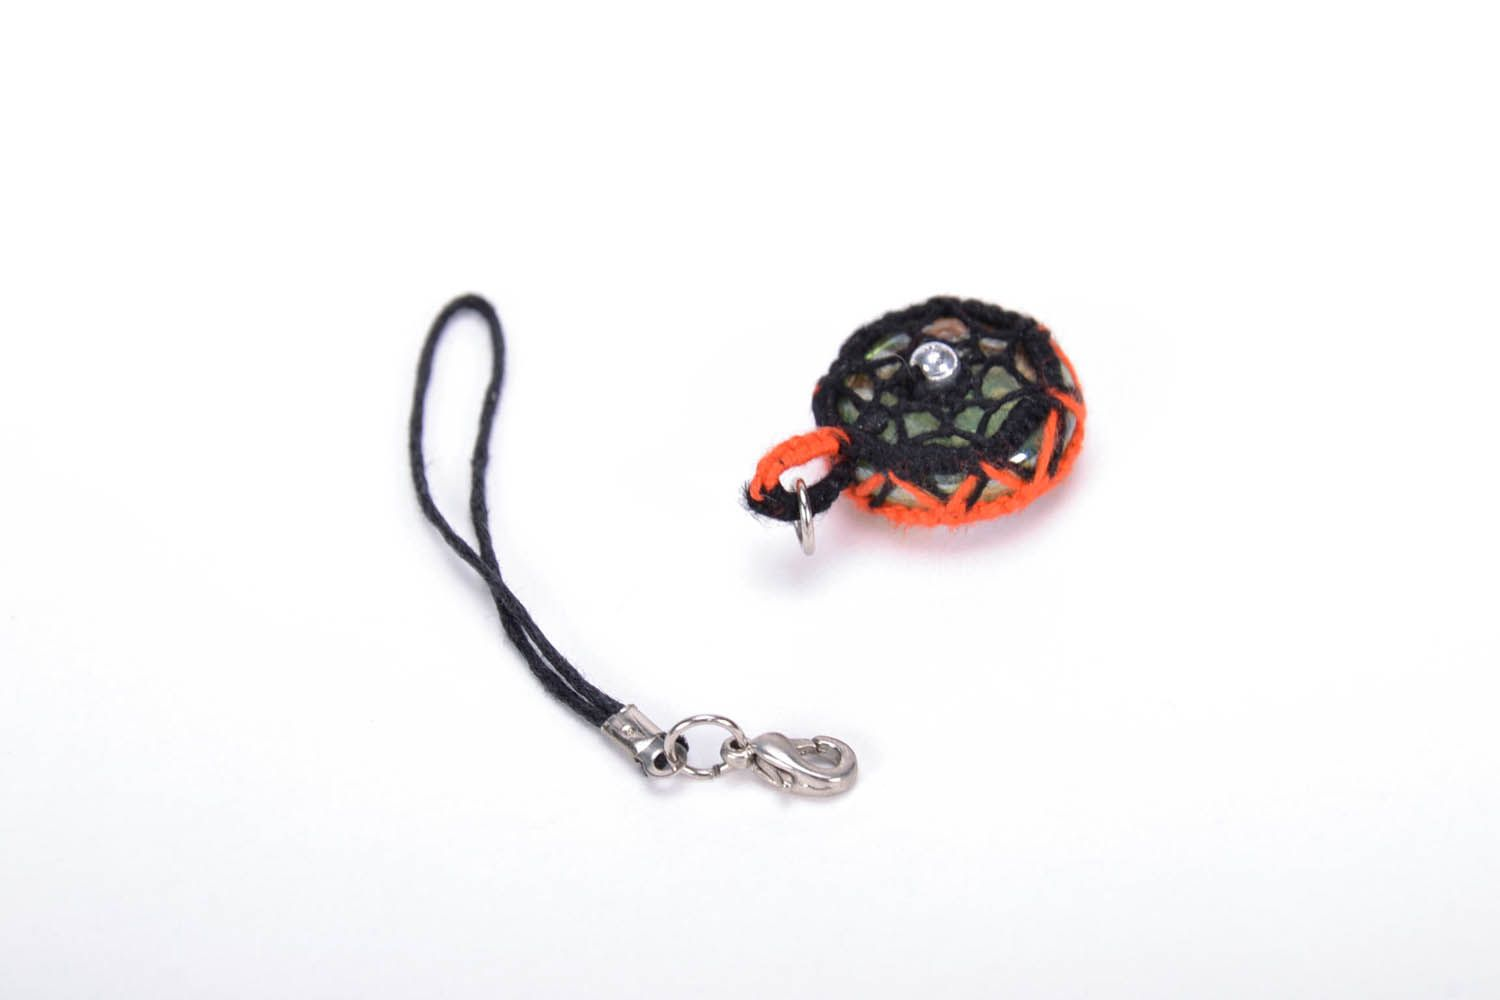 Cell phone charm photo 2